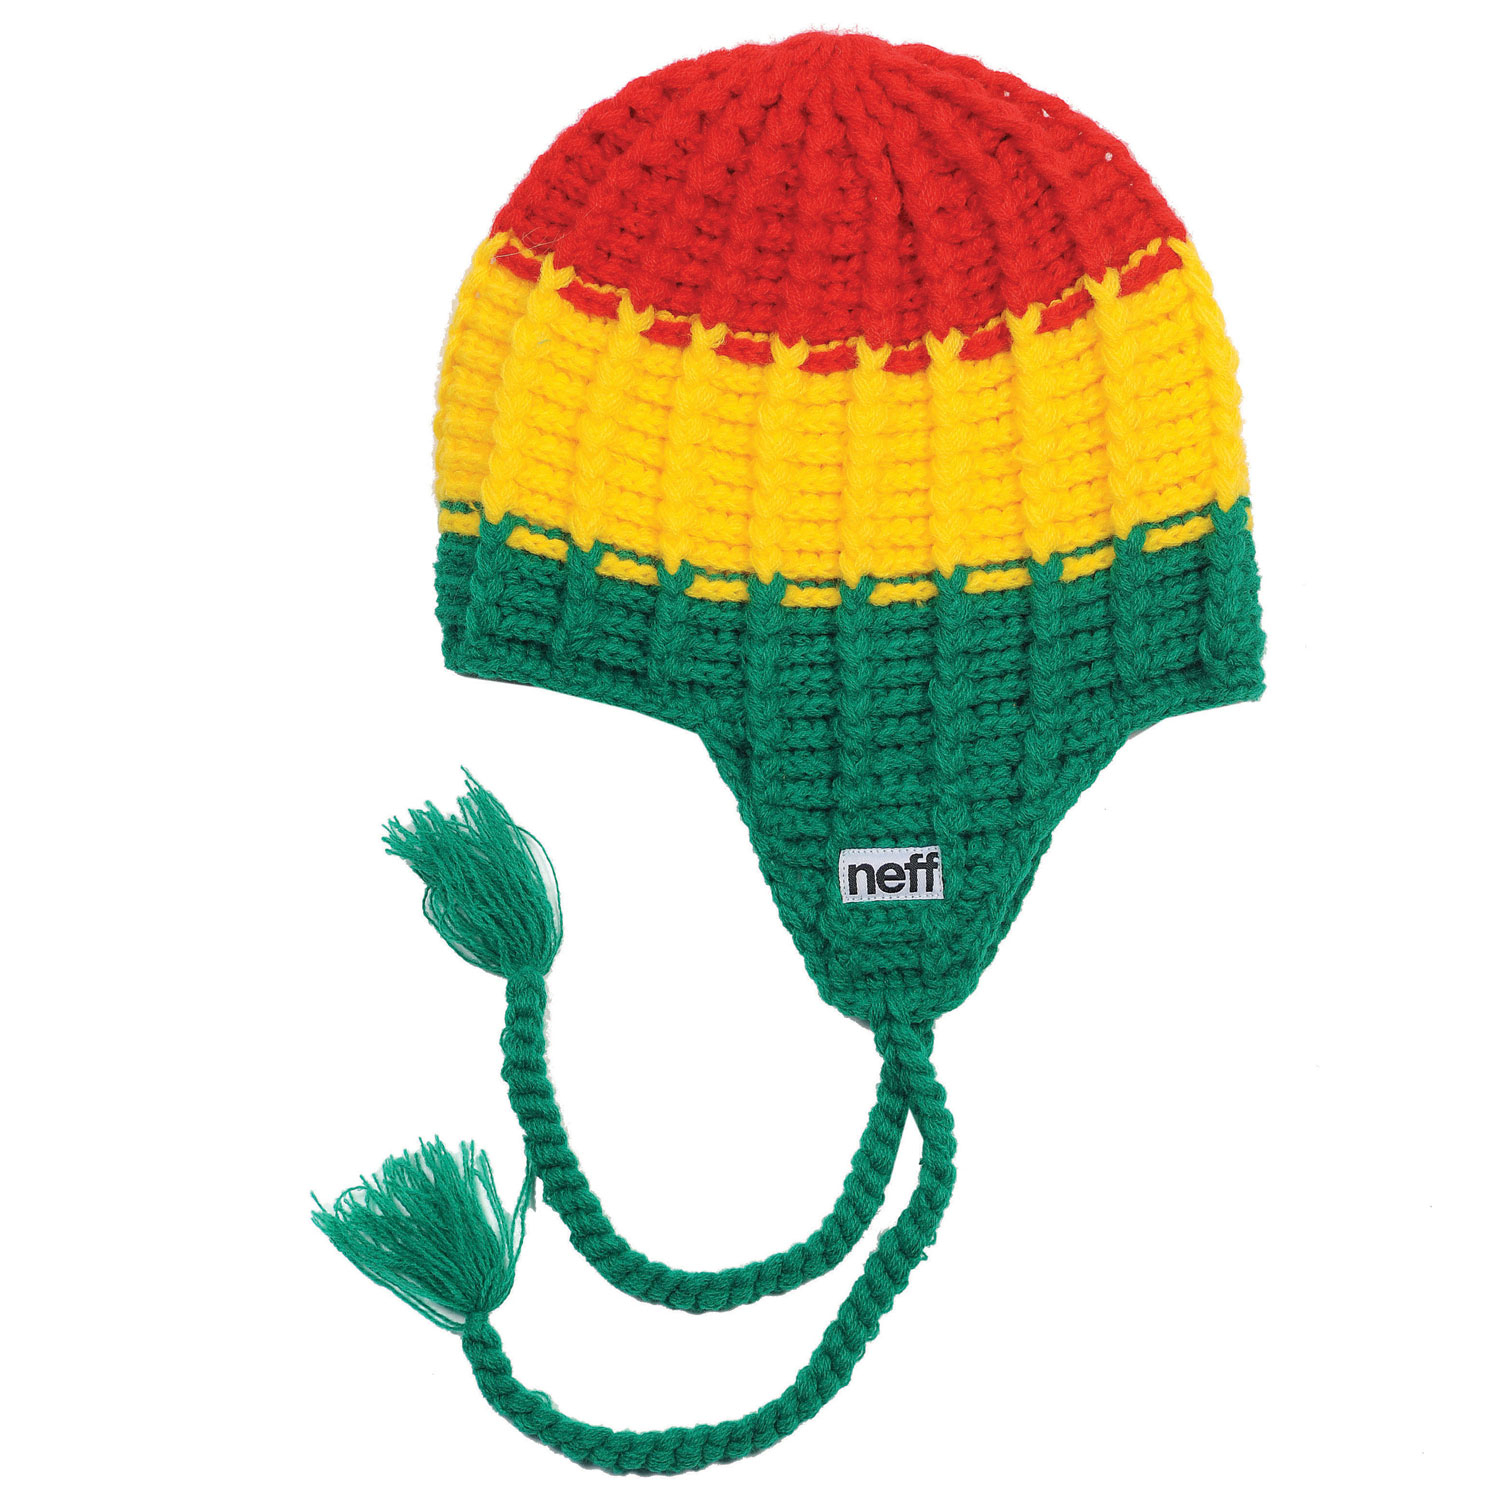 Skateboard Key Features of the Neff Boomer Beanie: 100% Acrylic - $25.95